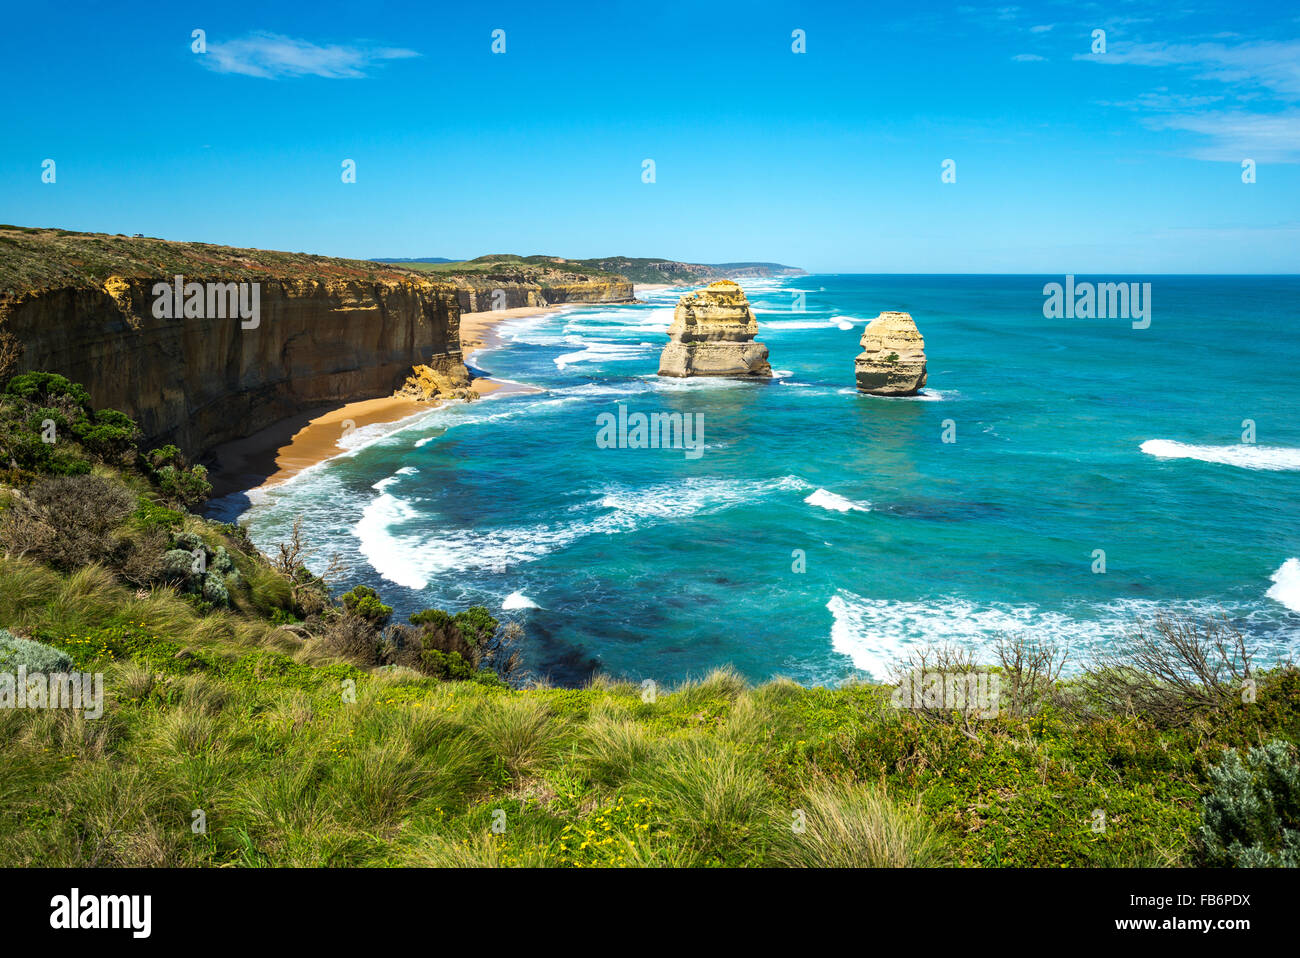 Australia, Port Campbell, the Twelve Apostles sea park - Stock Image